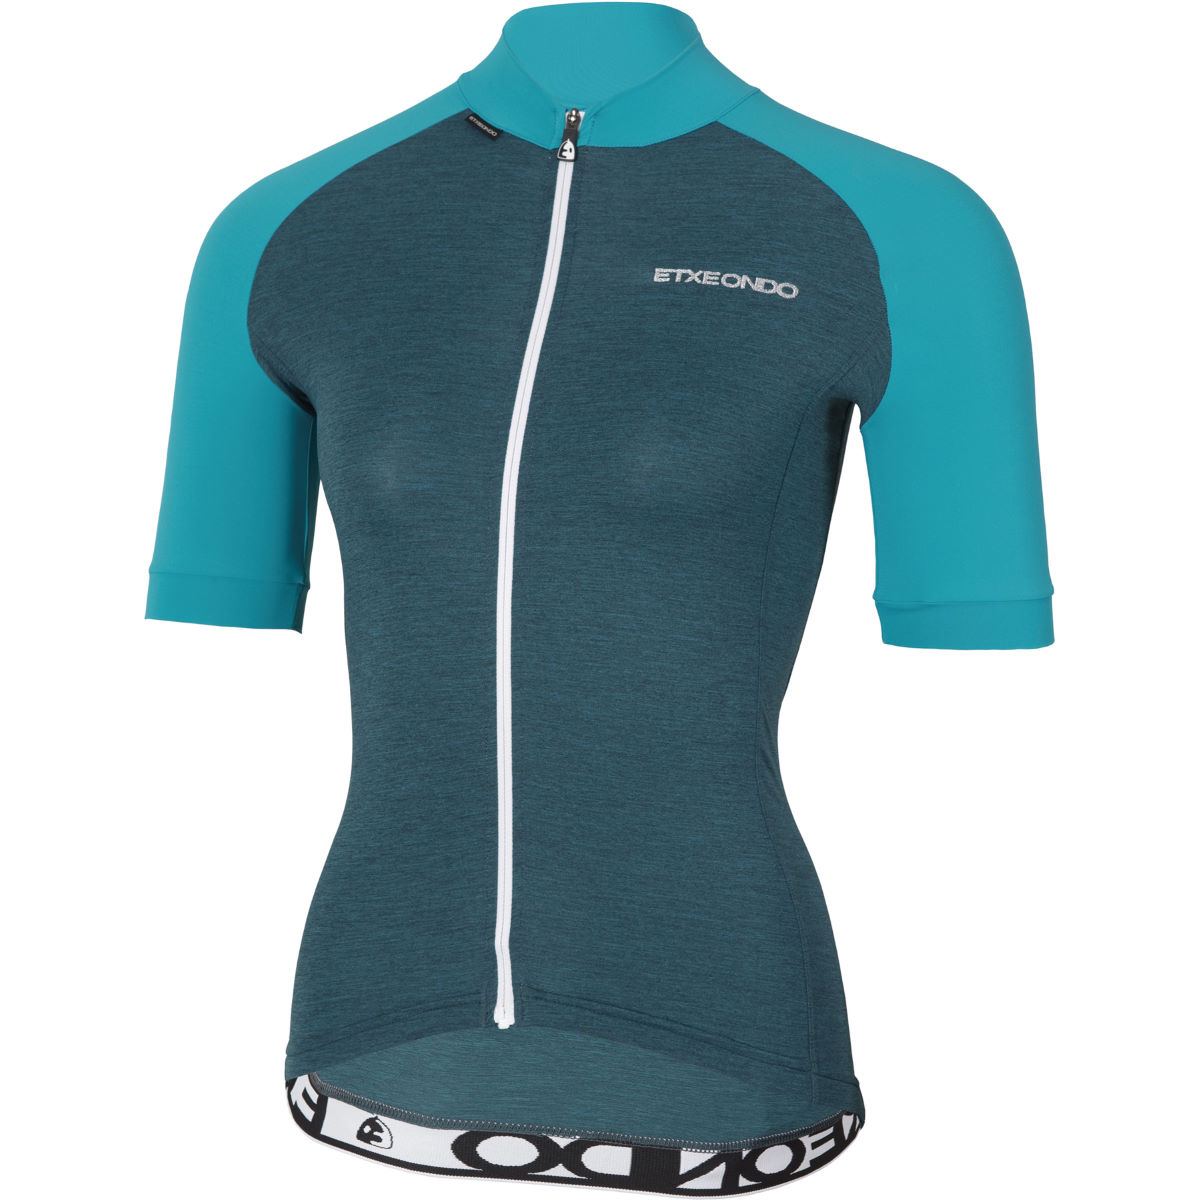 Image of Maillot Femme Etxeondo Terra (manches courtes) - L Bleu | Maillots